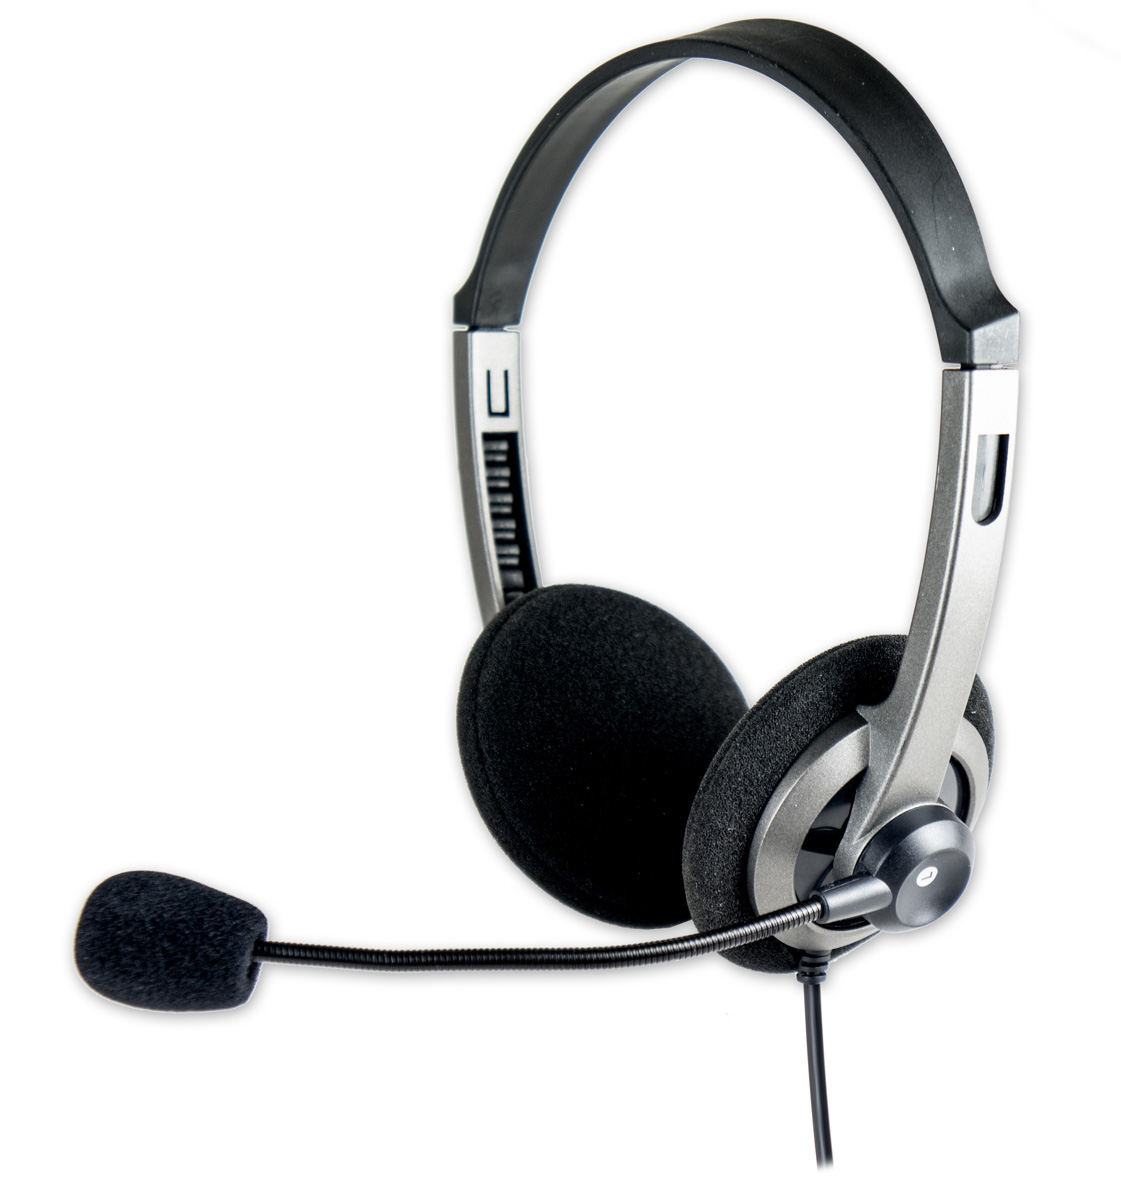 Connectland 3.5 mm Circum-aural Stereo Headset Headphone with Mic Silver/Black